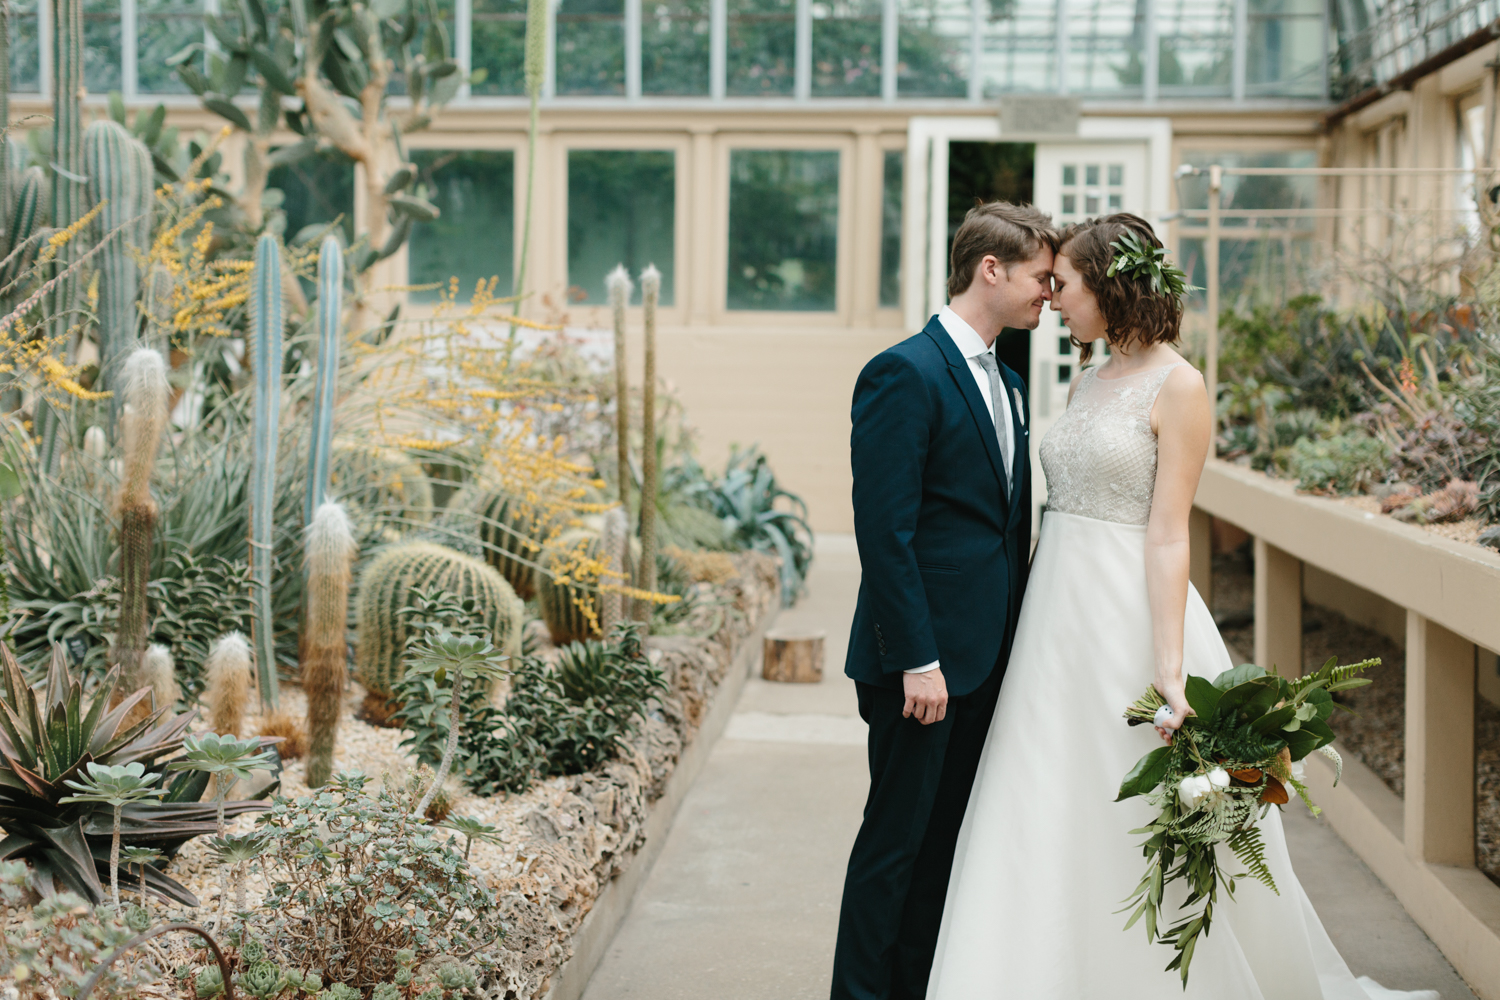 Chicago Garfield Park Conservatory Wedding by Northern Michigan Photographer Mae Stier-050.jpg